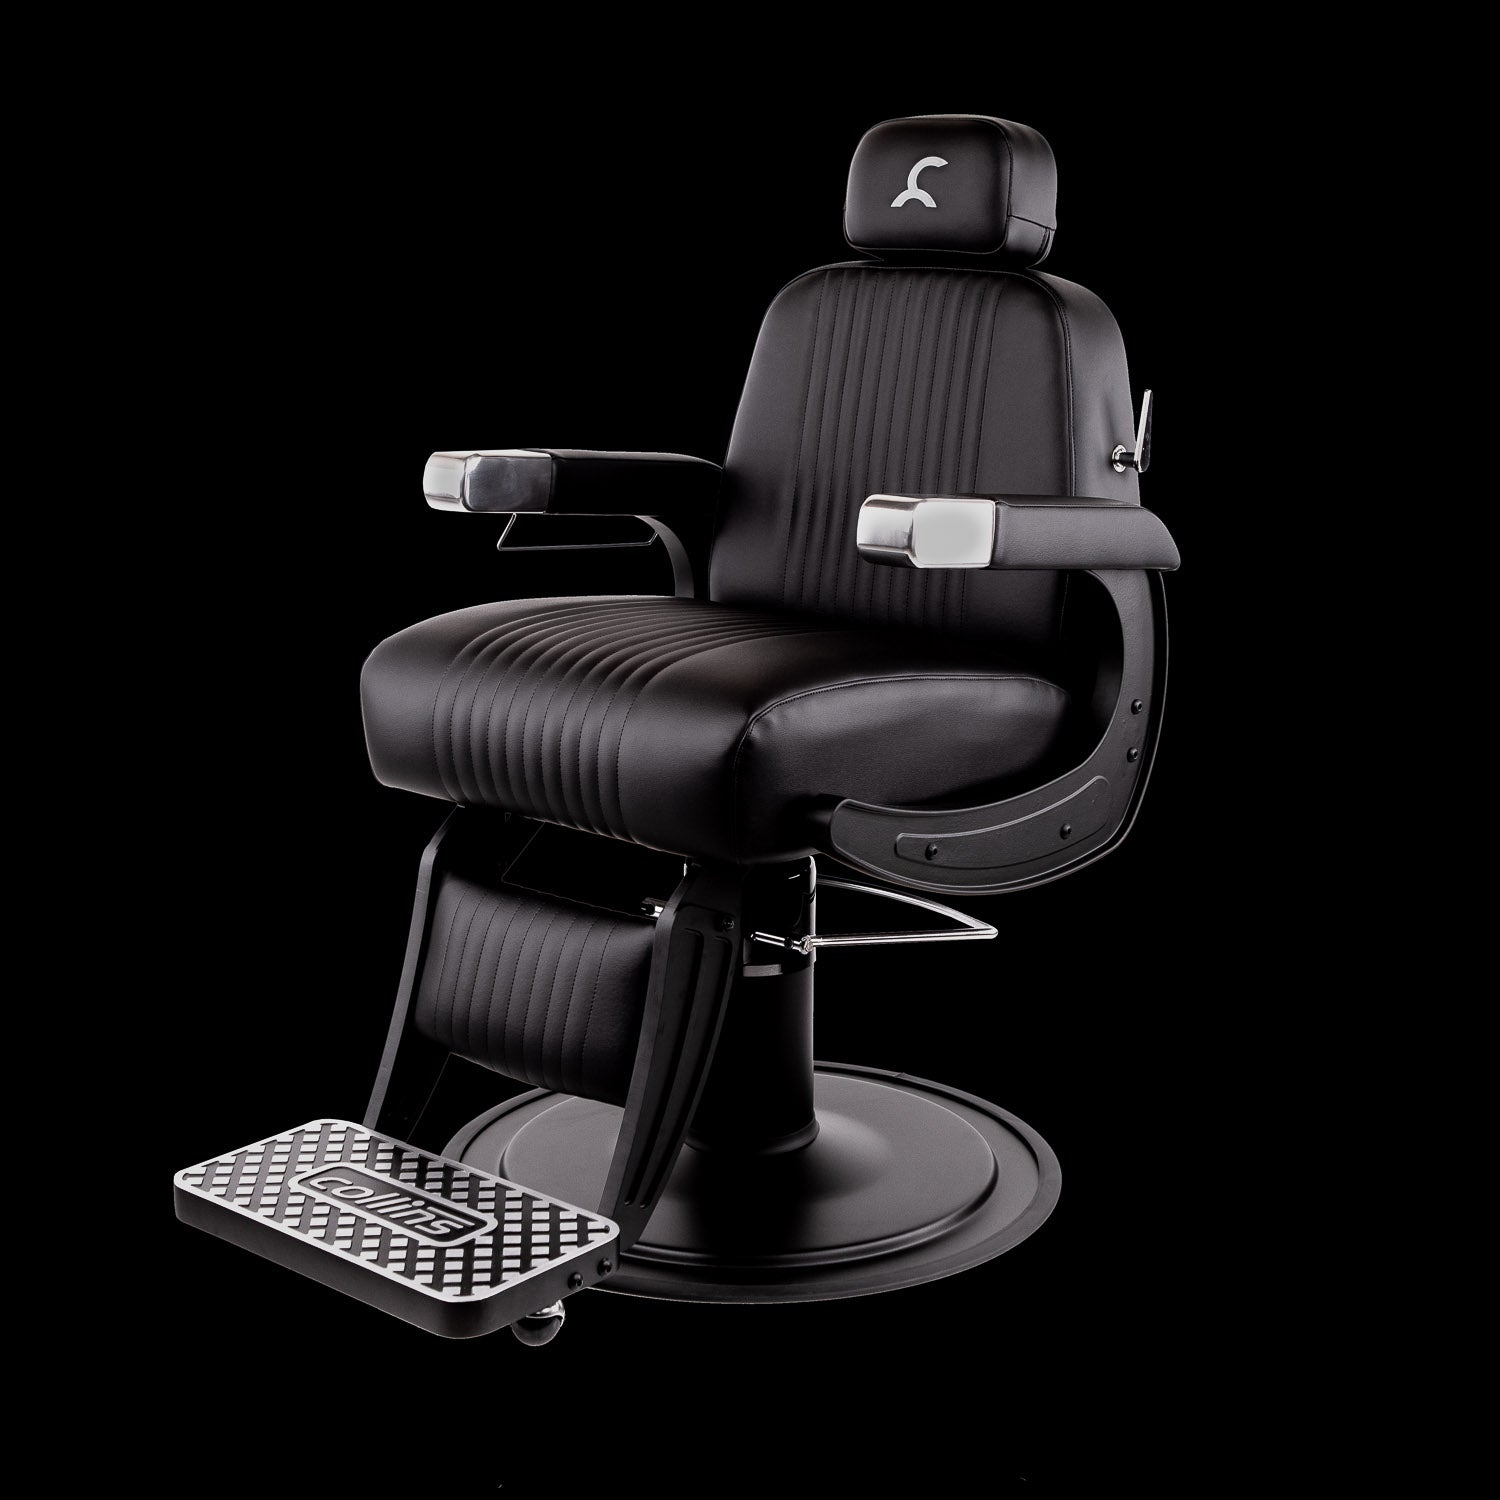 Blacked-Out Cobalt Omega Barber Chair - Collins